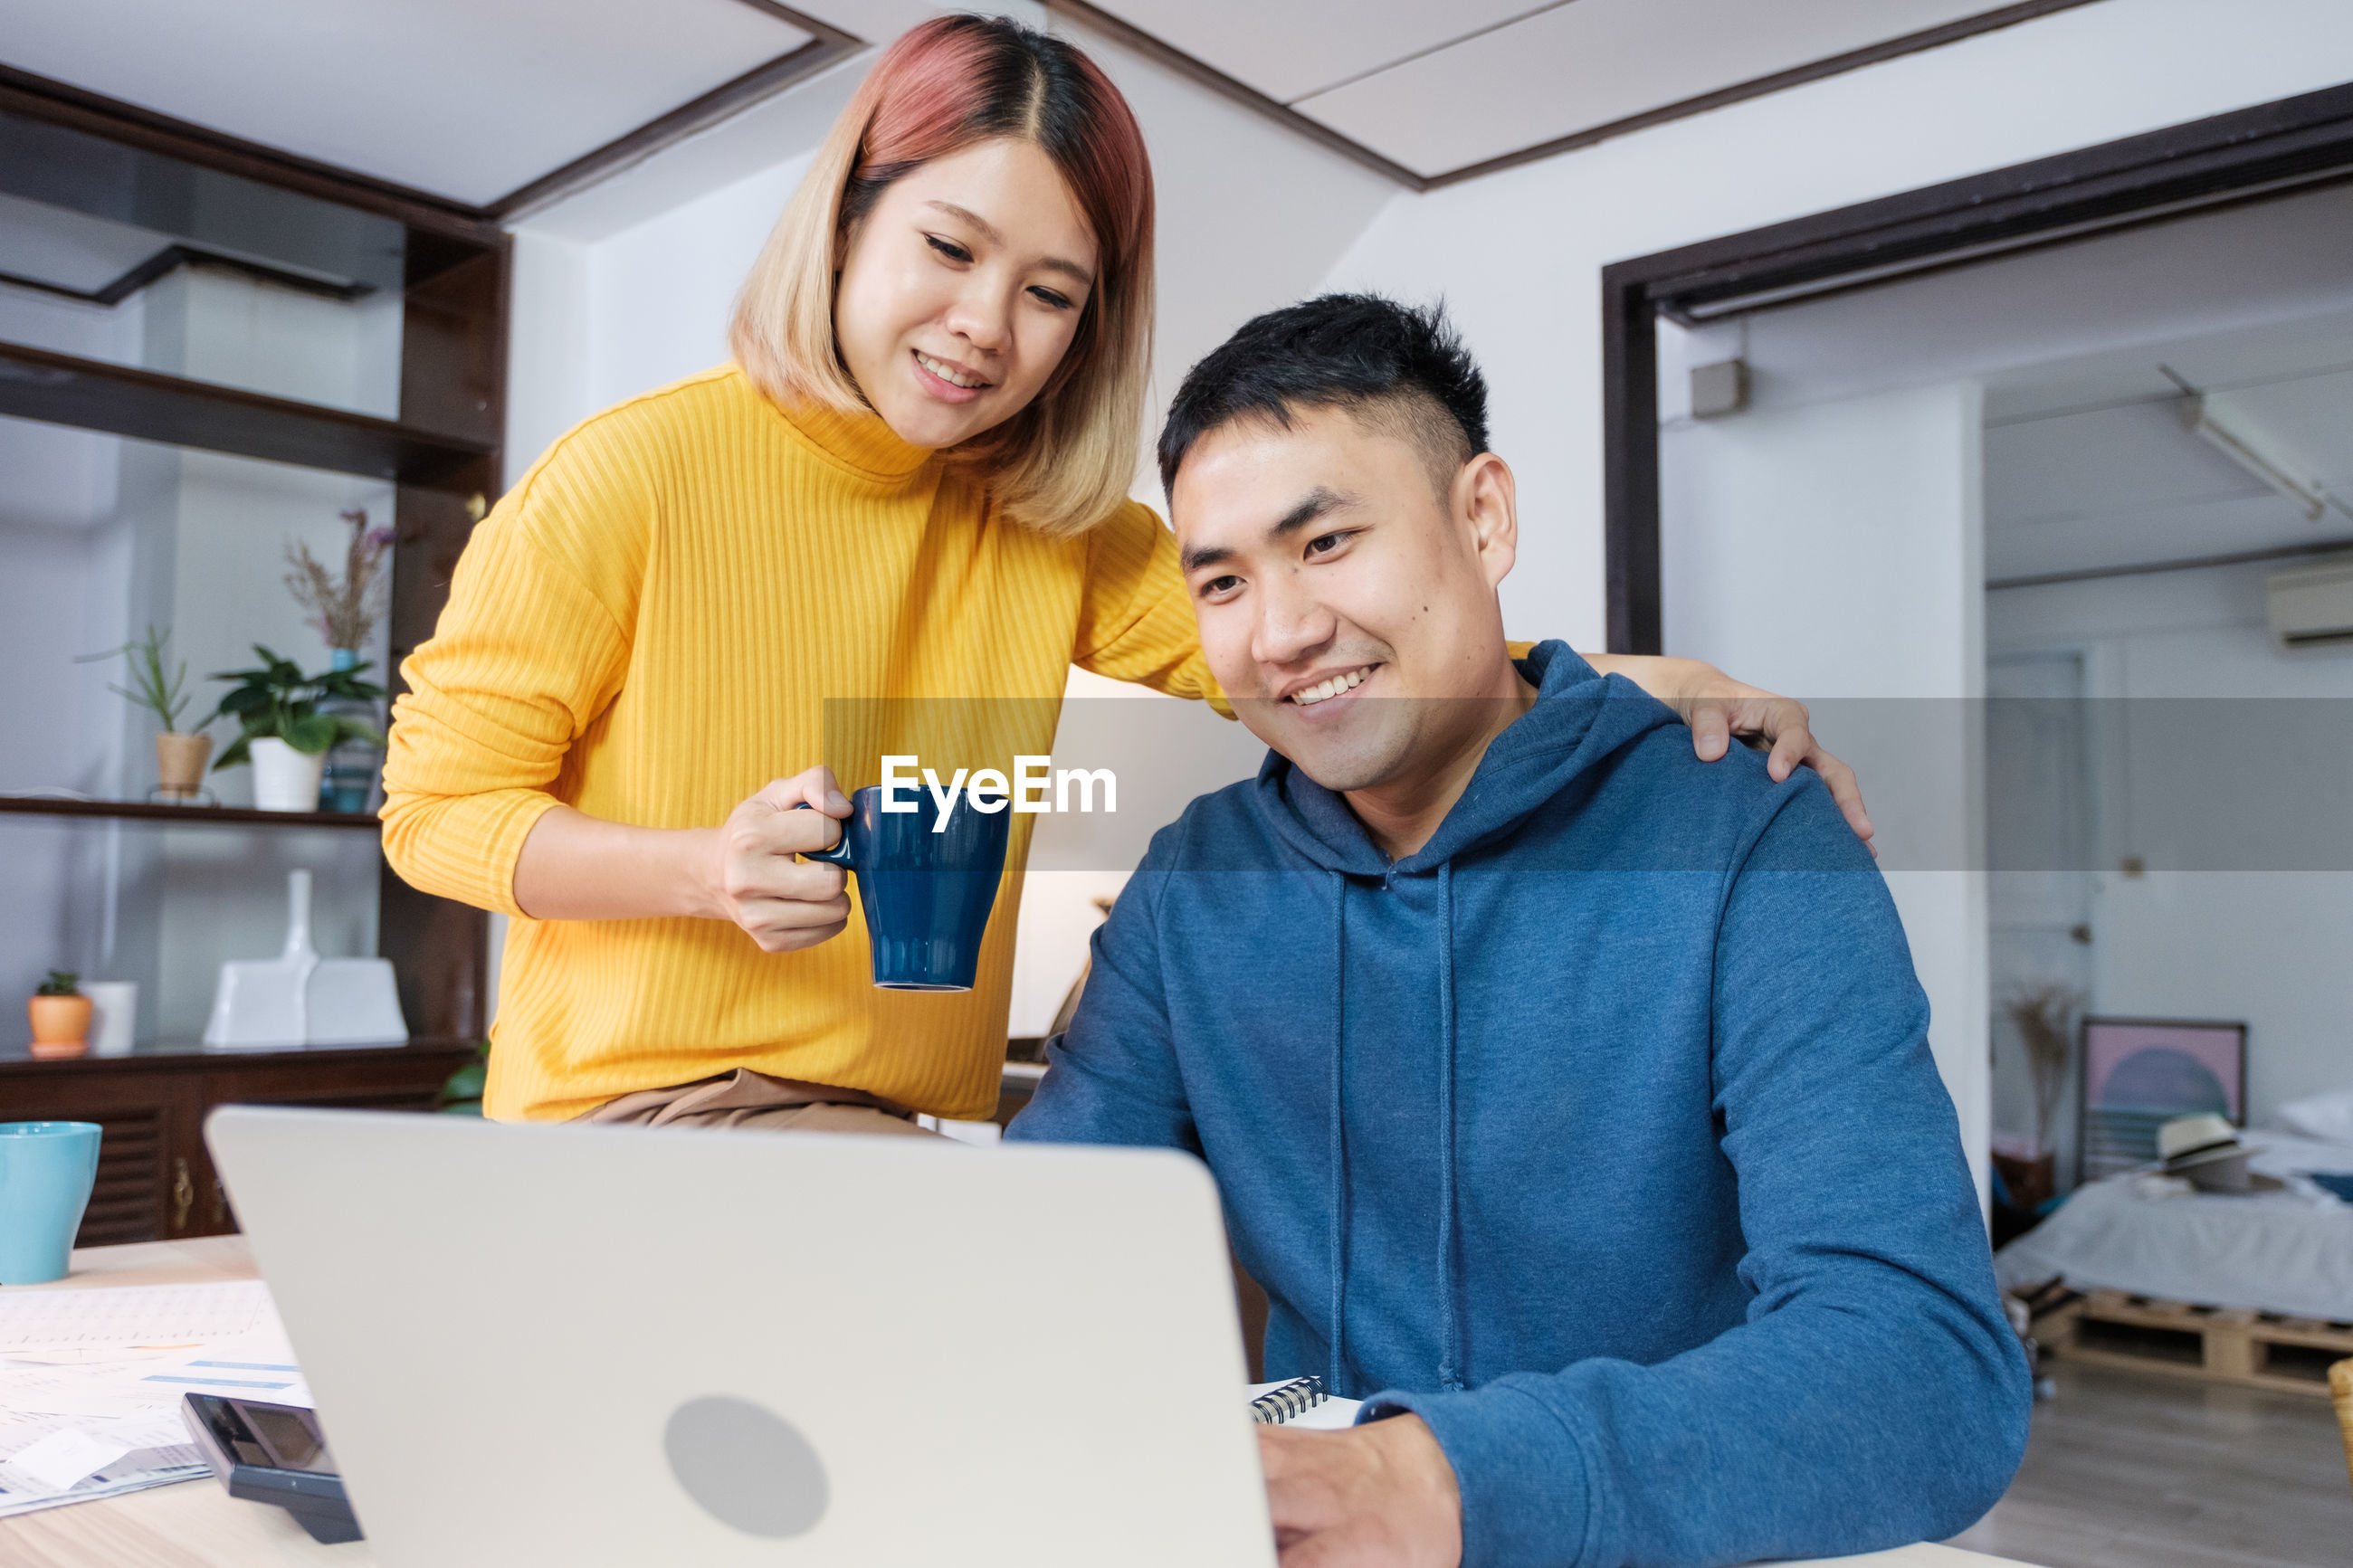 Young man with woman using laptop at home